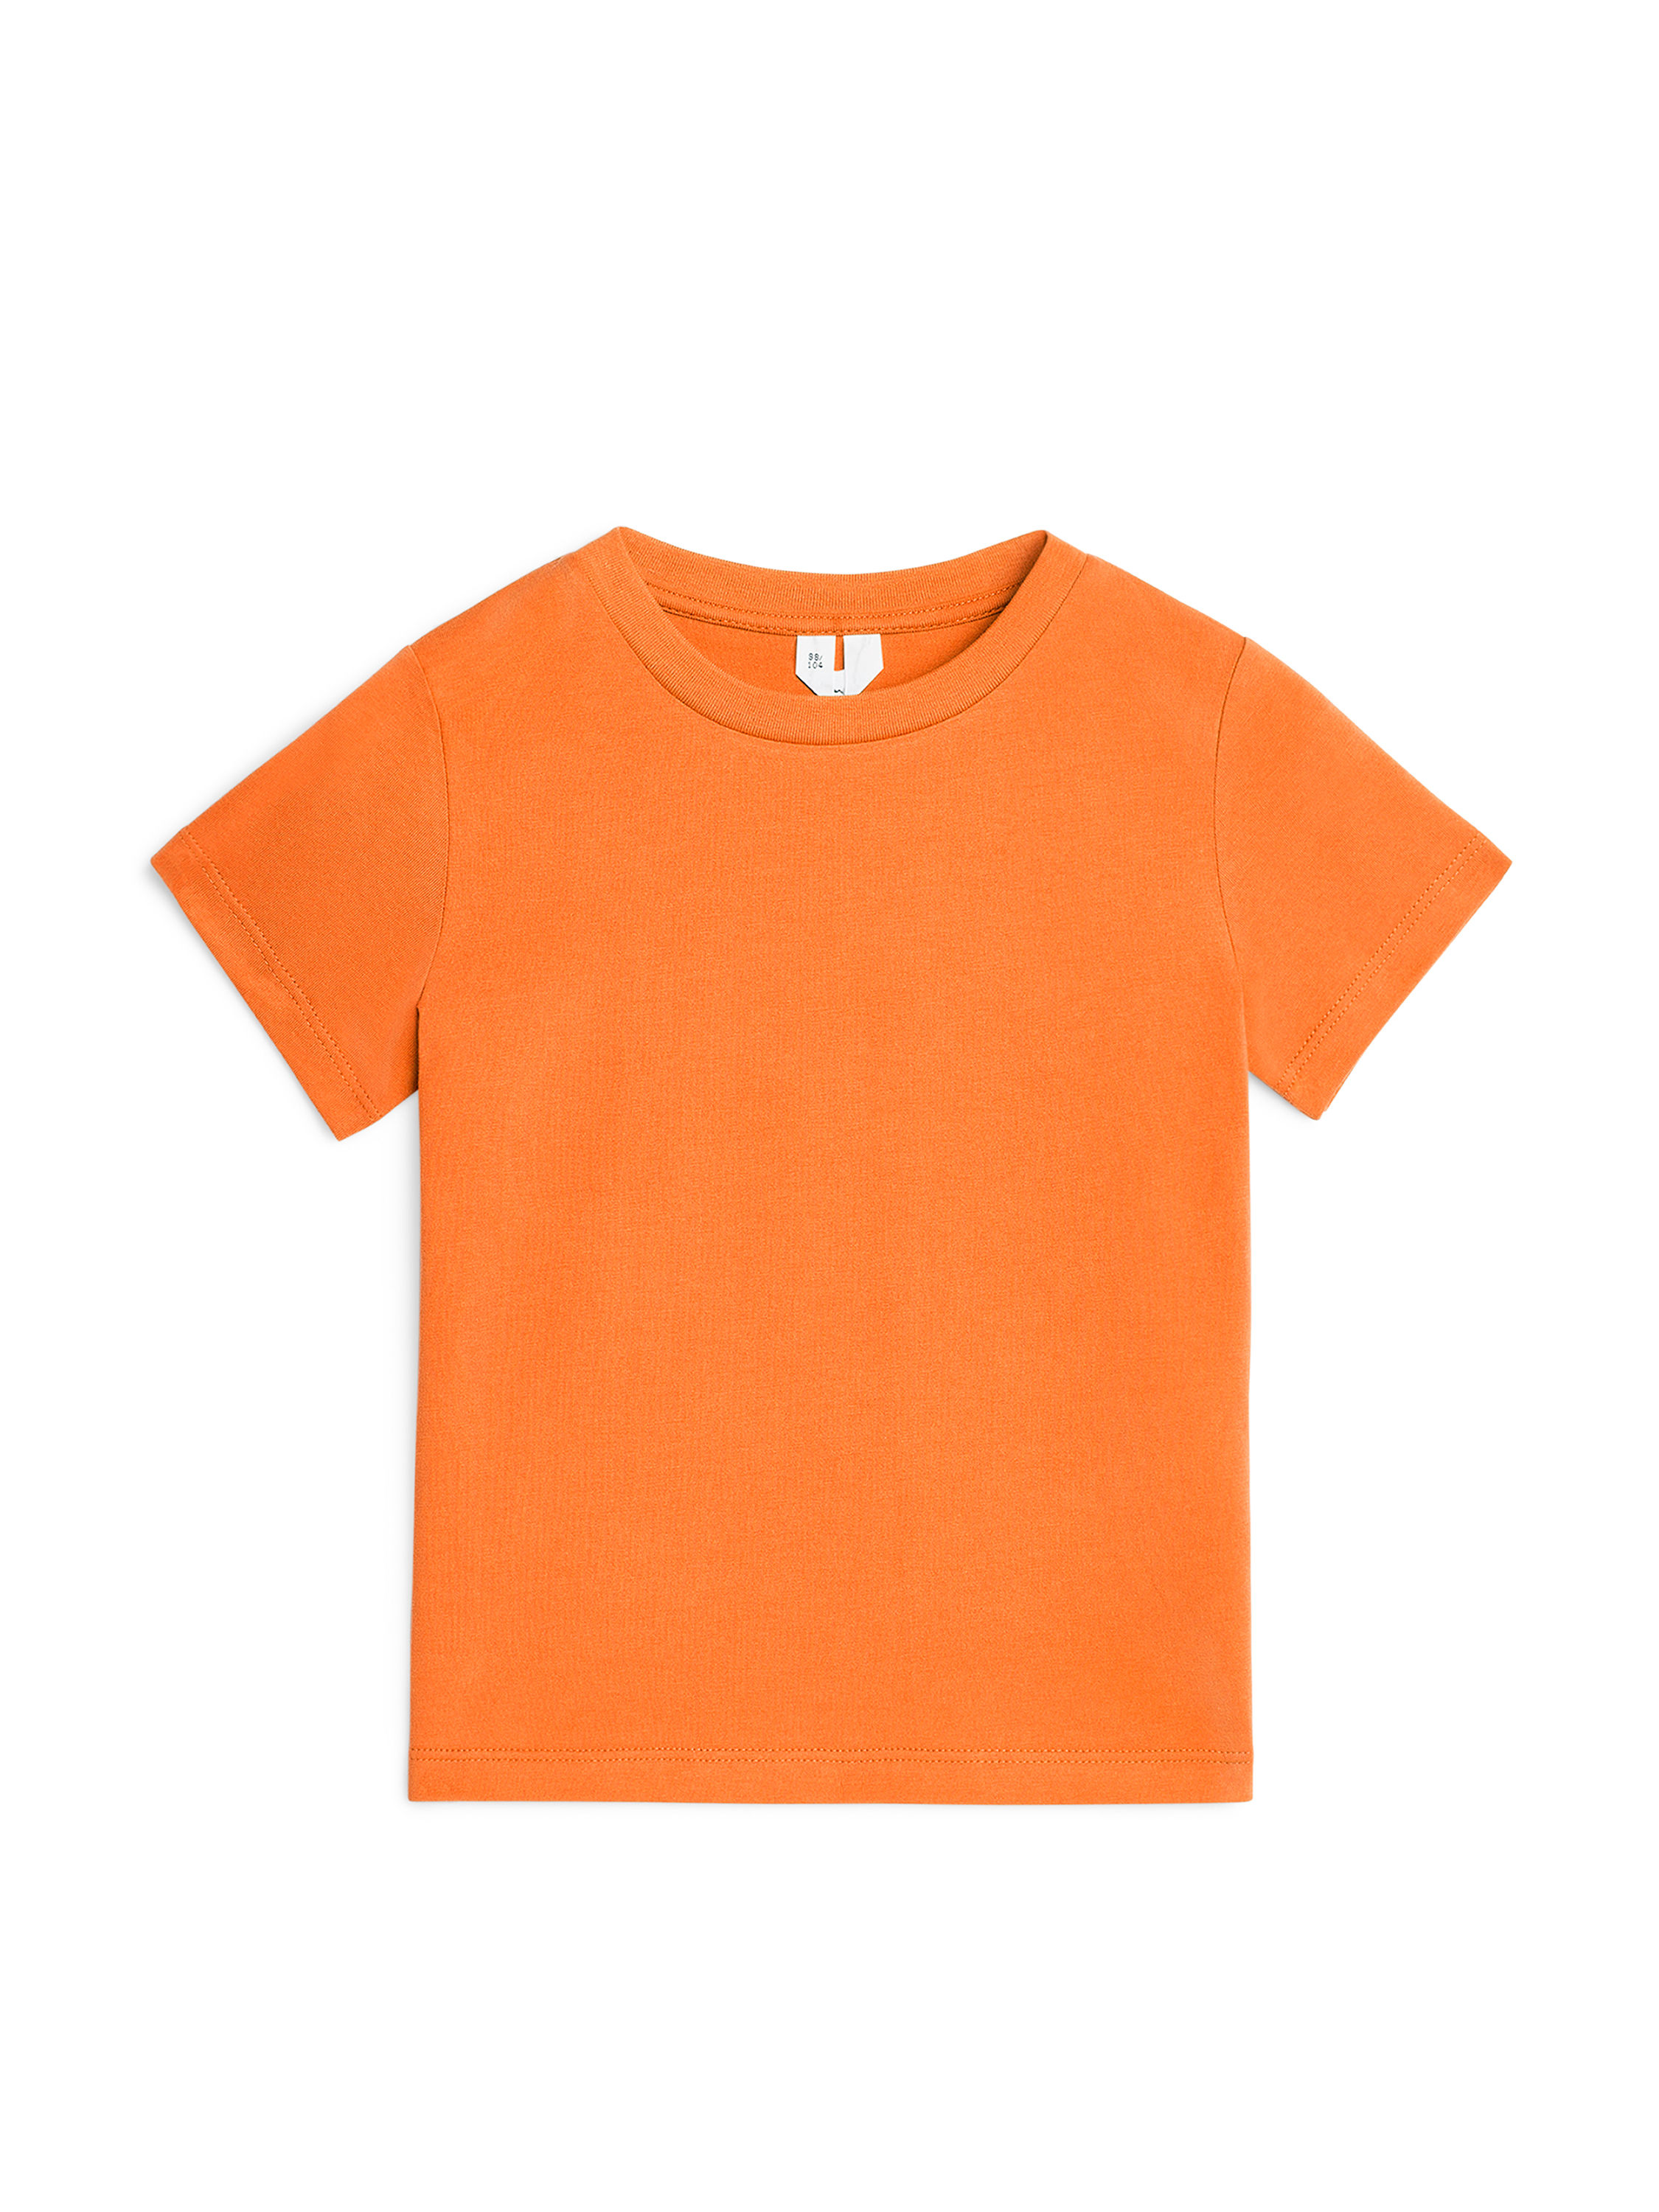 Fabric Swatch image of Arket organic cotton crew-neck t-shirt in orange